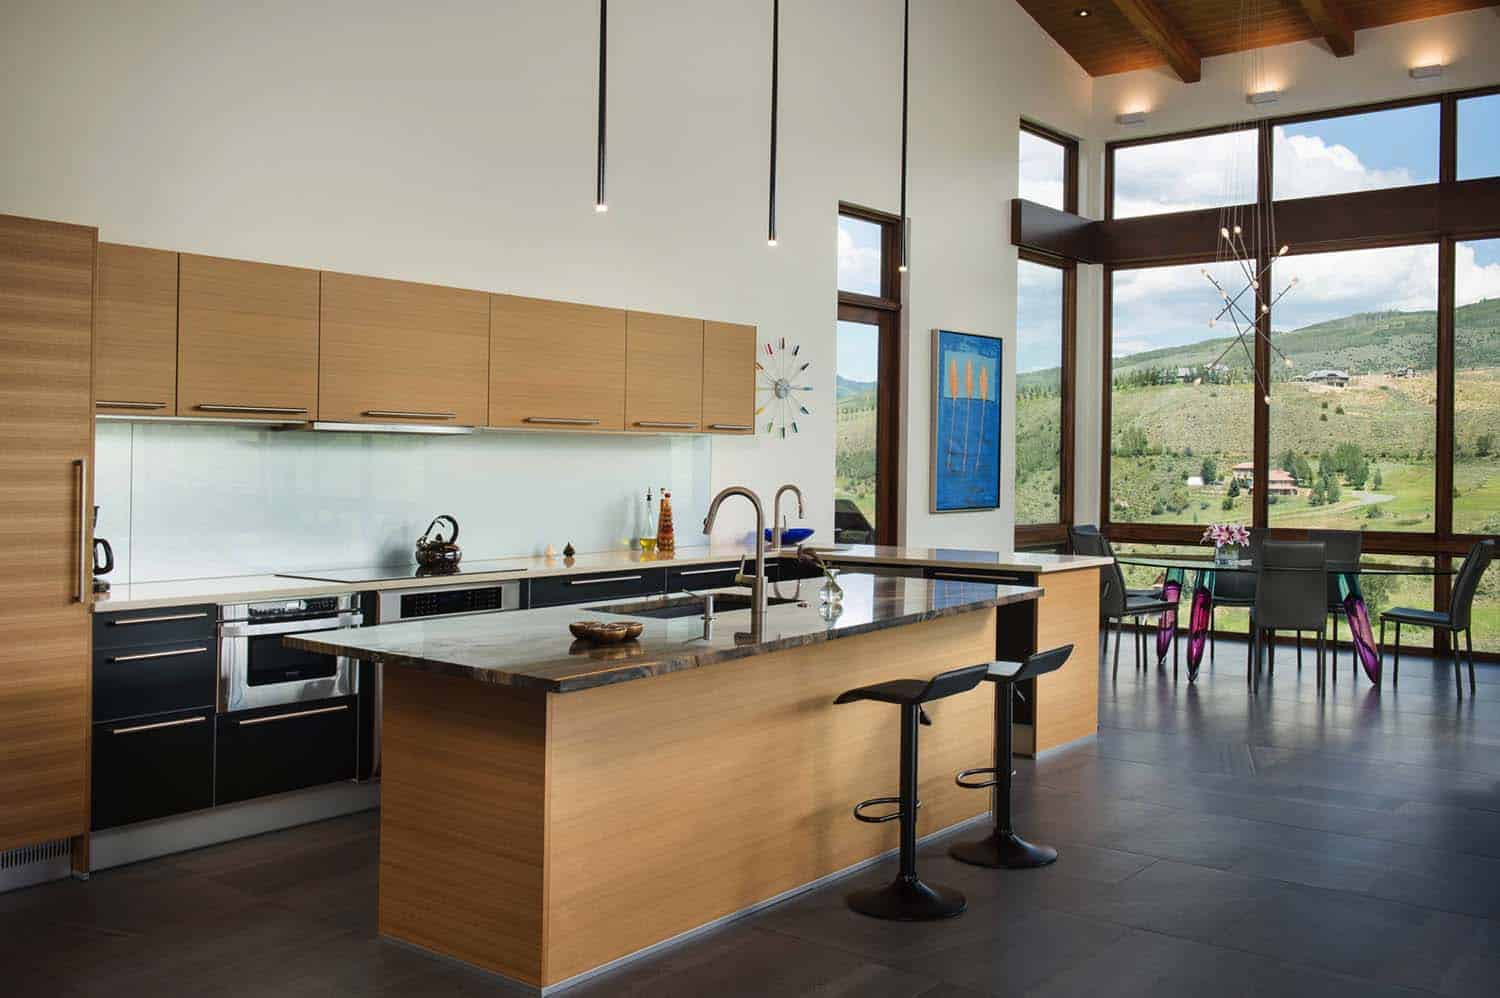 Contemporary Mountain Home Renovation-Berglund Architects-10-1 Kindesign